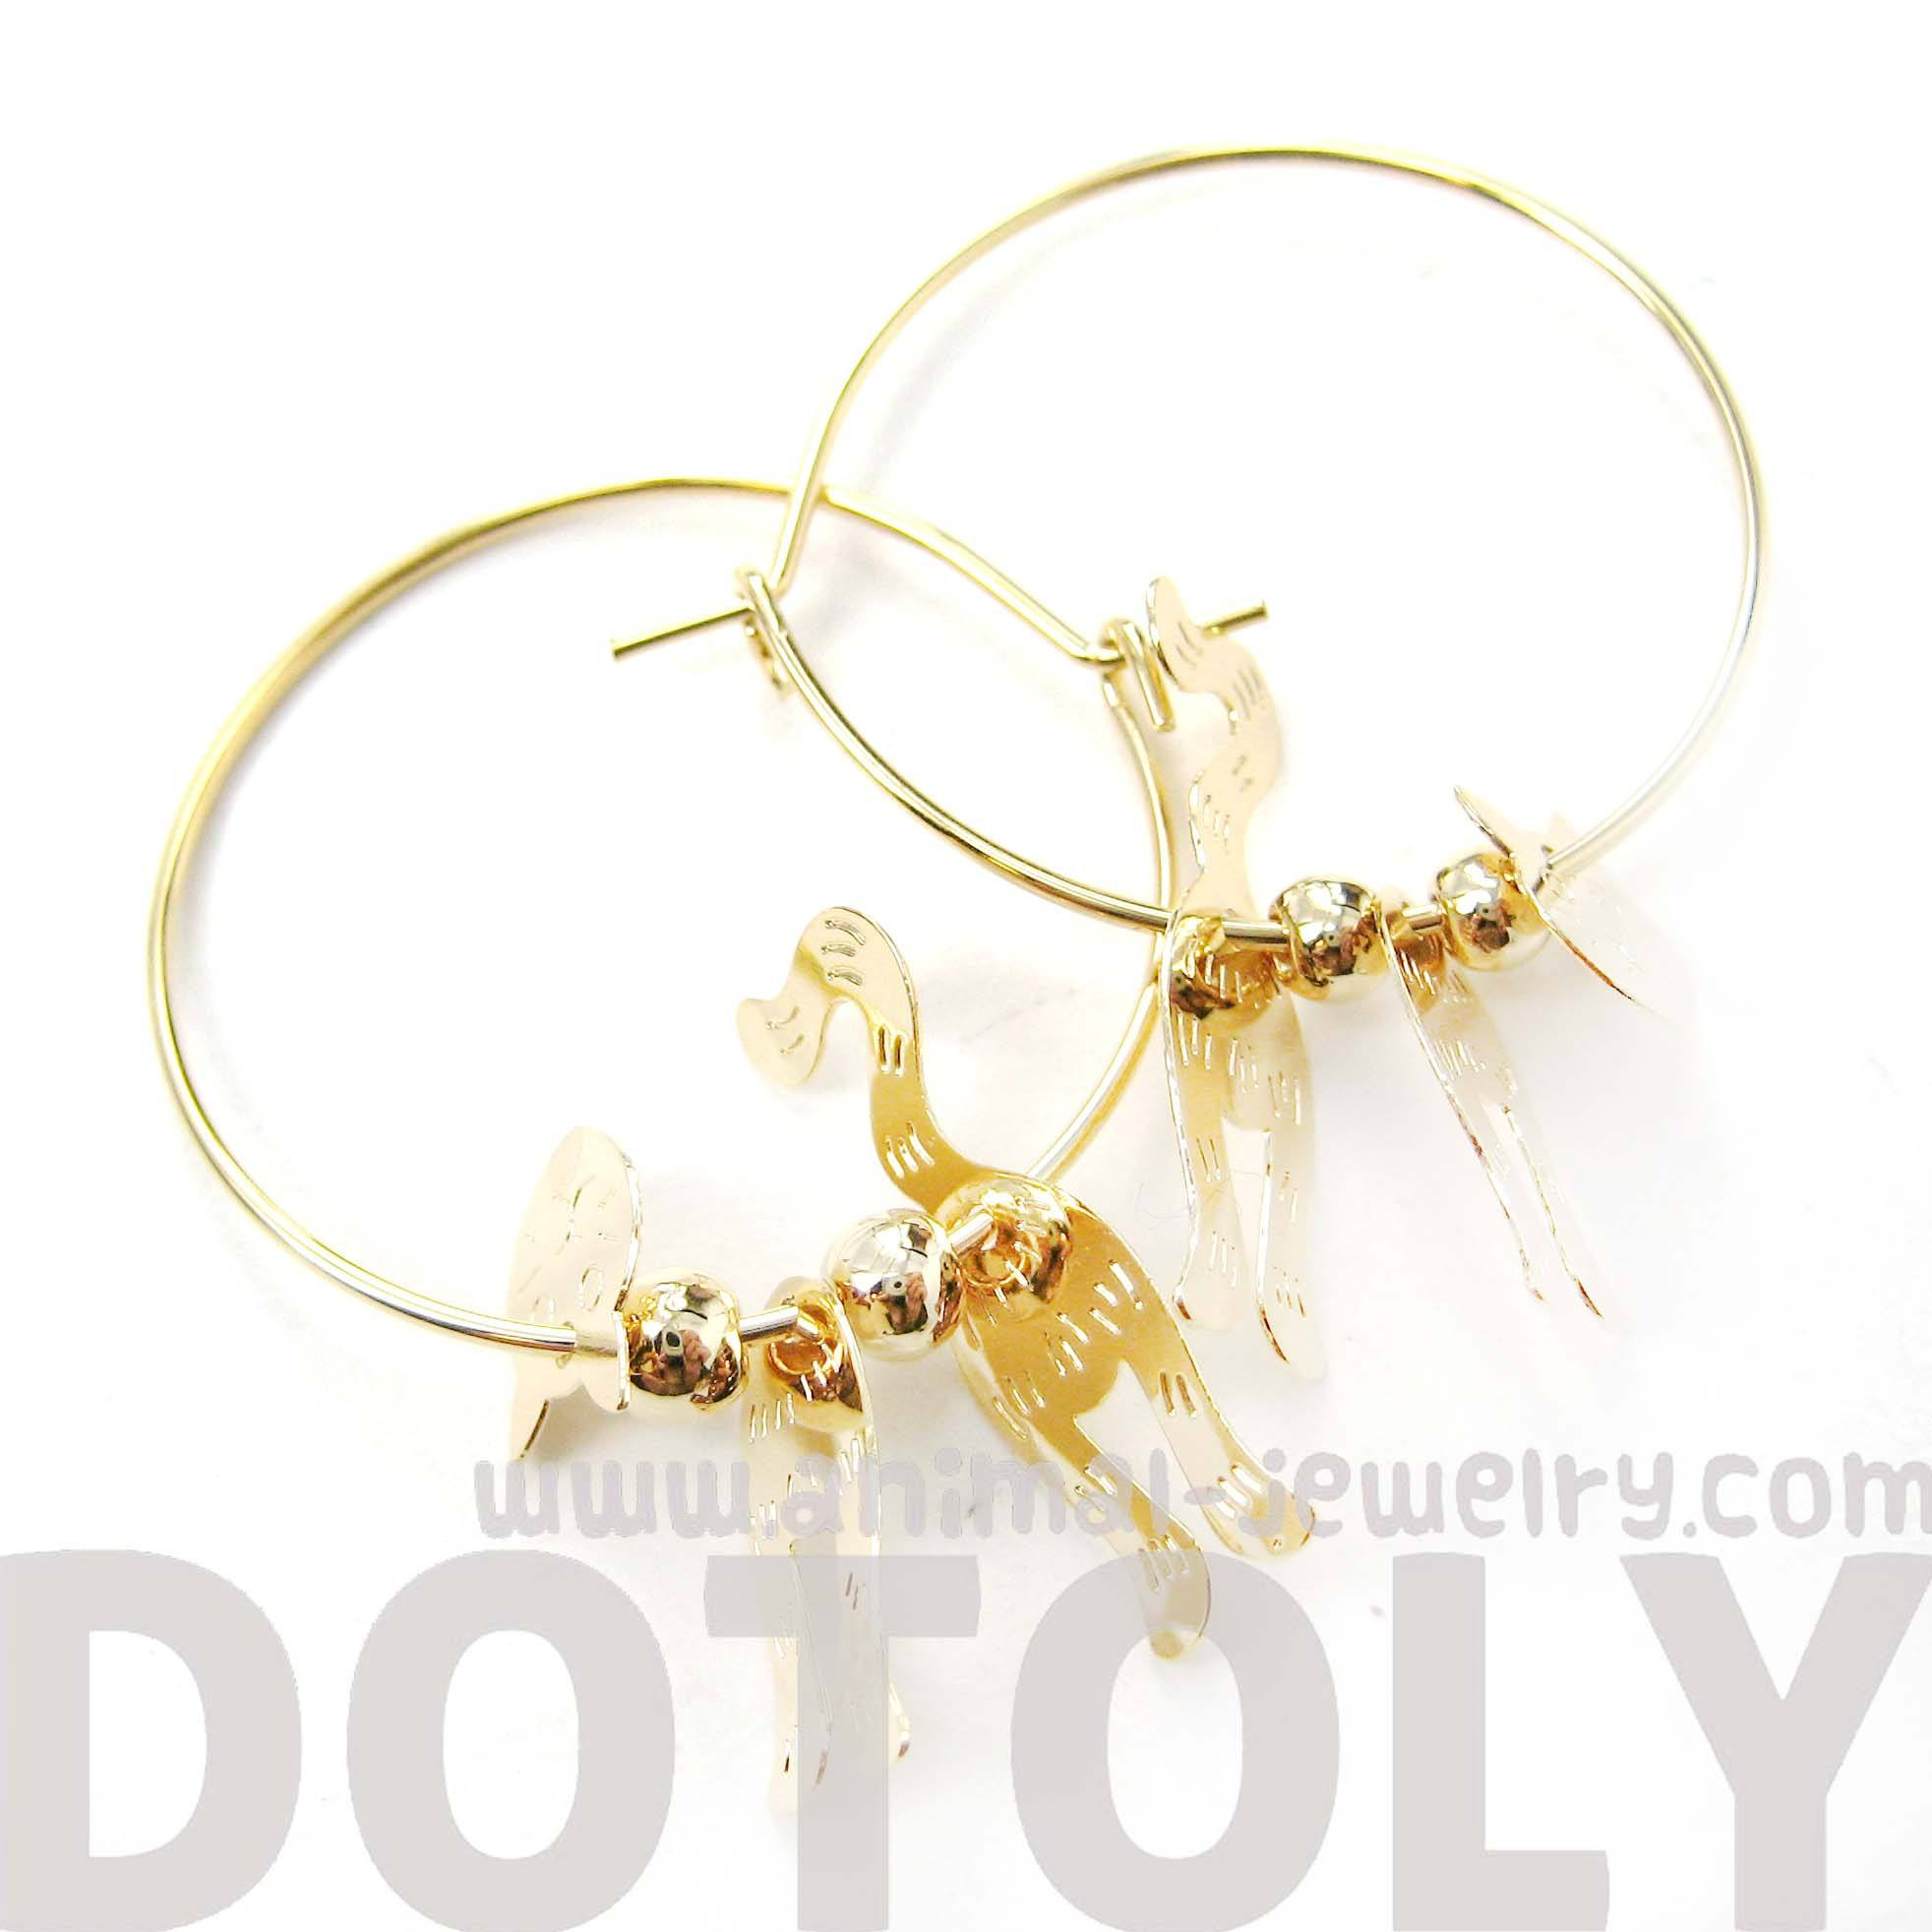 Adorable 3D Kitty Cat Shaped Dangle Hoop Earrings in Gold | Animal Jewelry